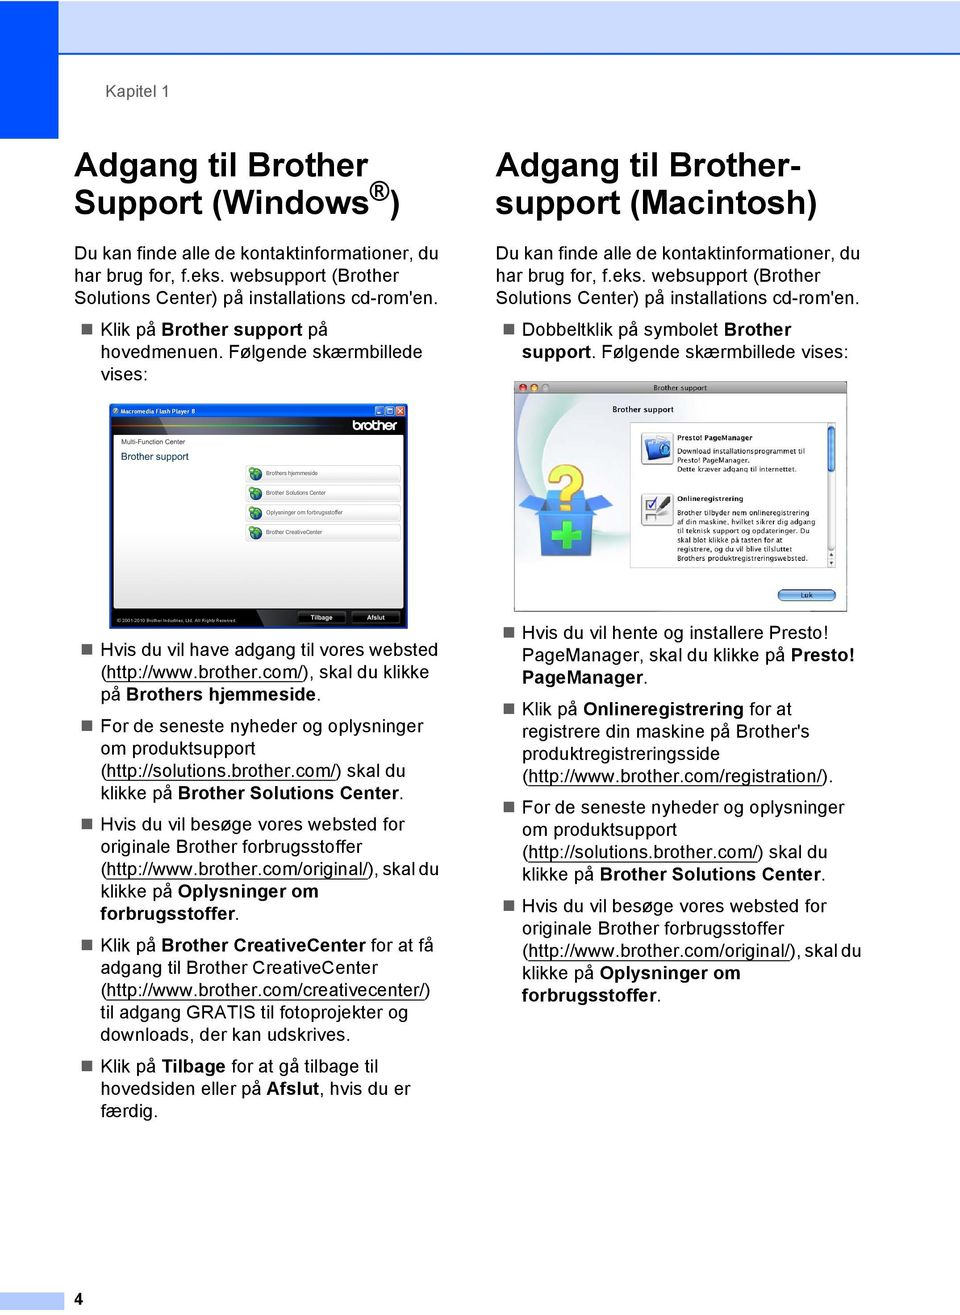 websupport (Brother Solutions Center) på installations cd-rom'en. Dobbeltklik på symbolet Brother support. Følgende skærmbillede vises: Hvis du vil have adgang til vores websted (http://www.brother.